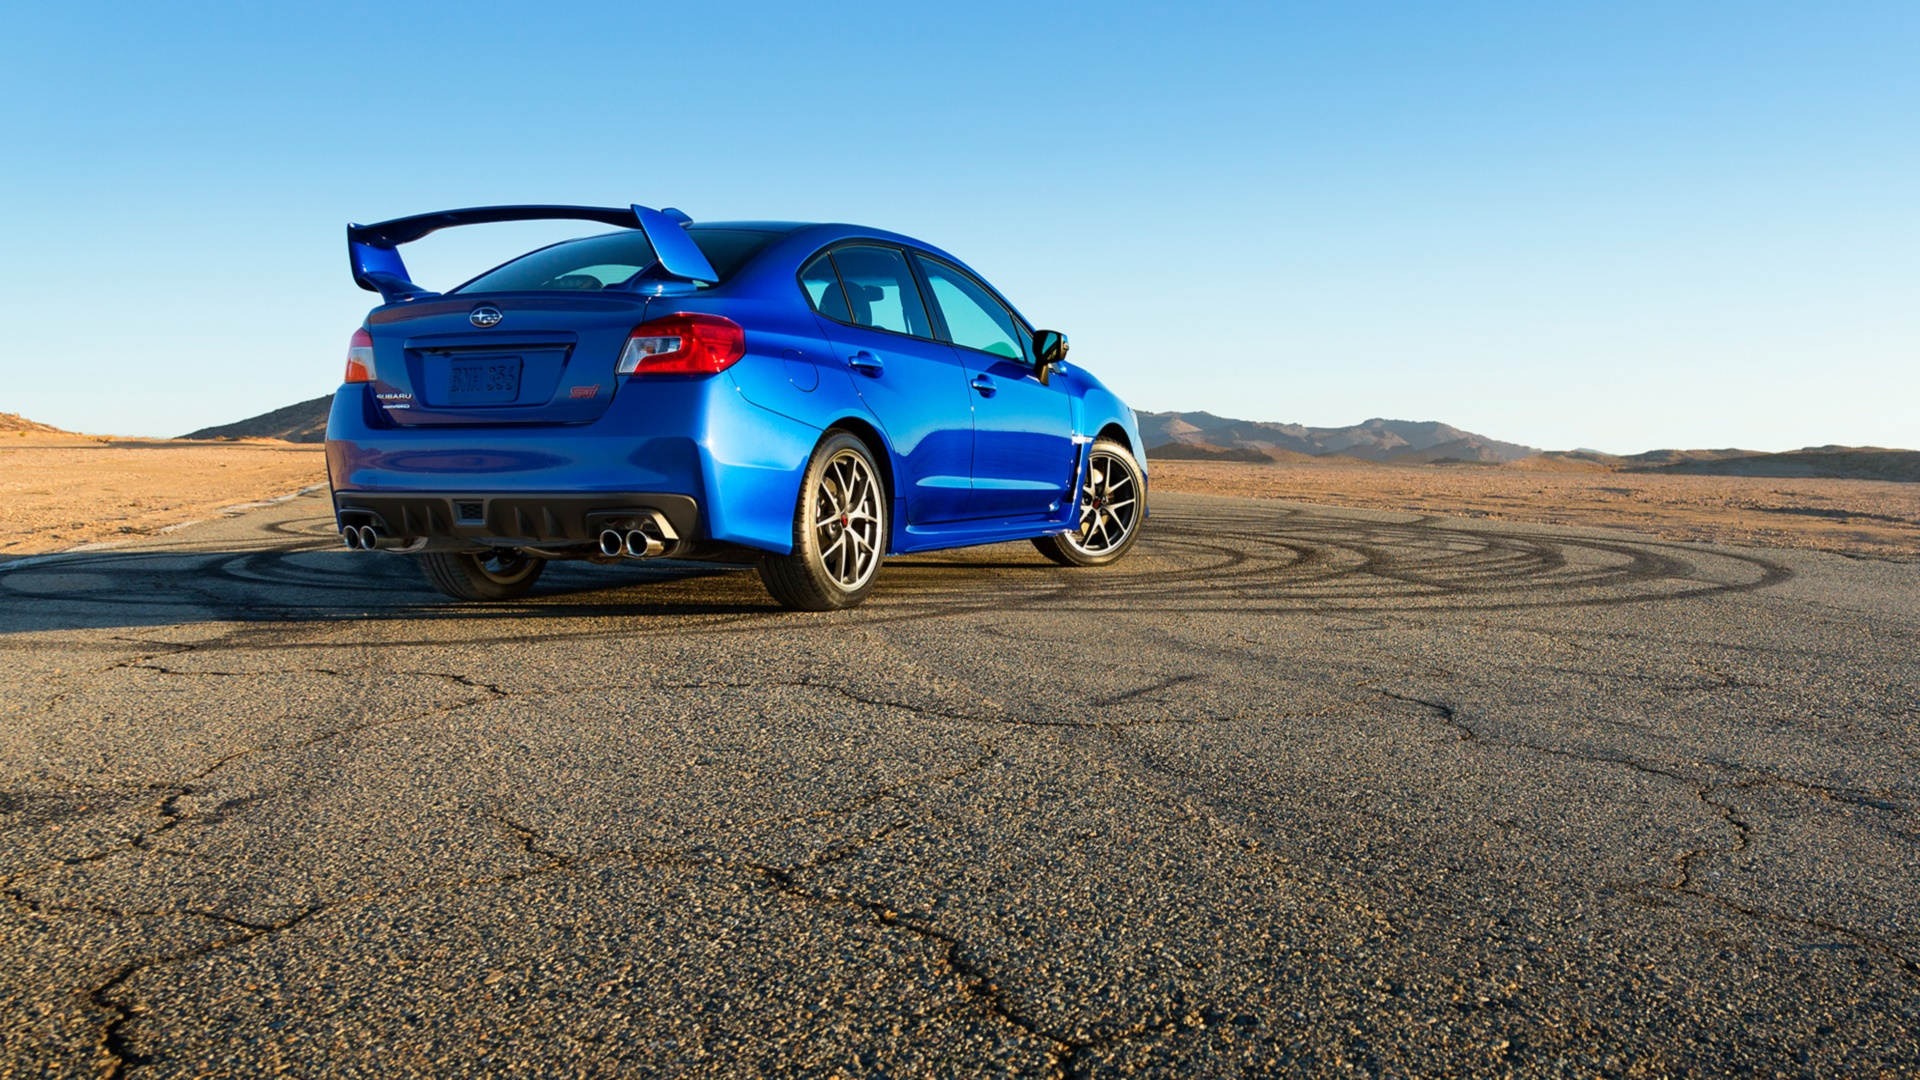 2015 subaru wrx sti wallpaper wallpapersafari. Black Bedroom Furniture Sets. Home Design Ideas